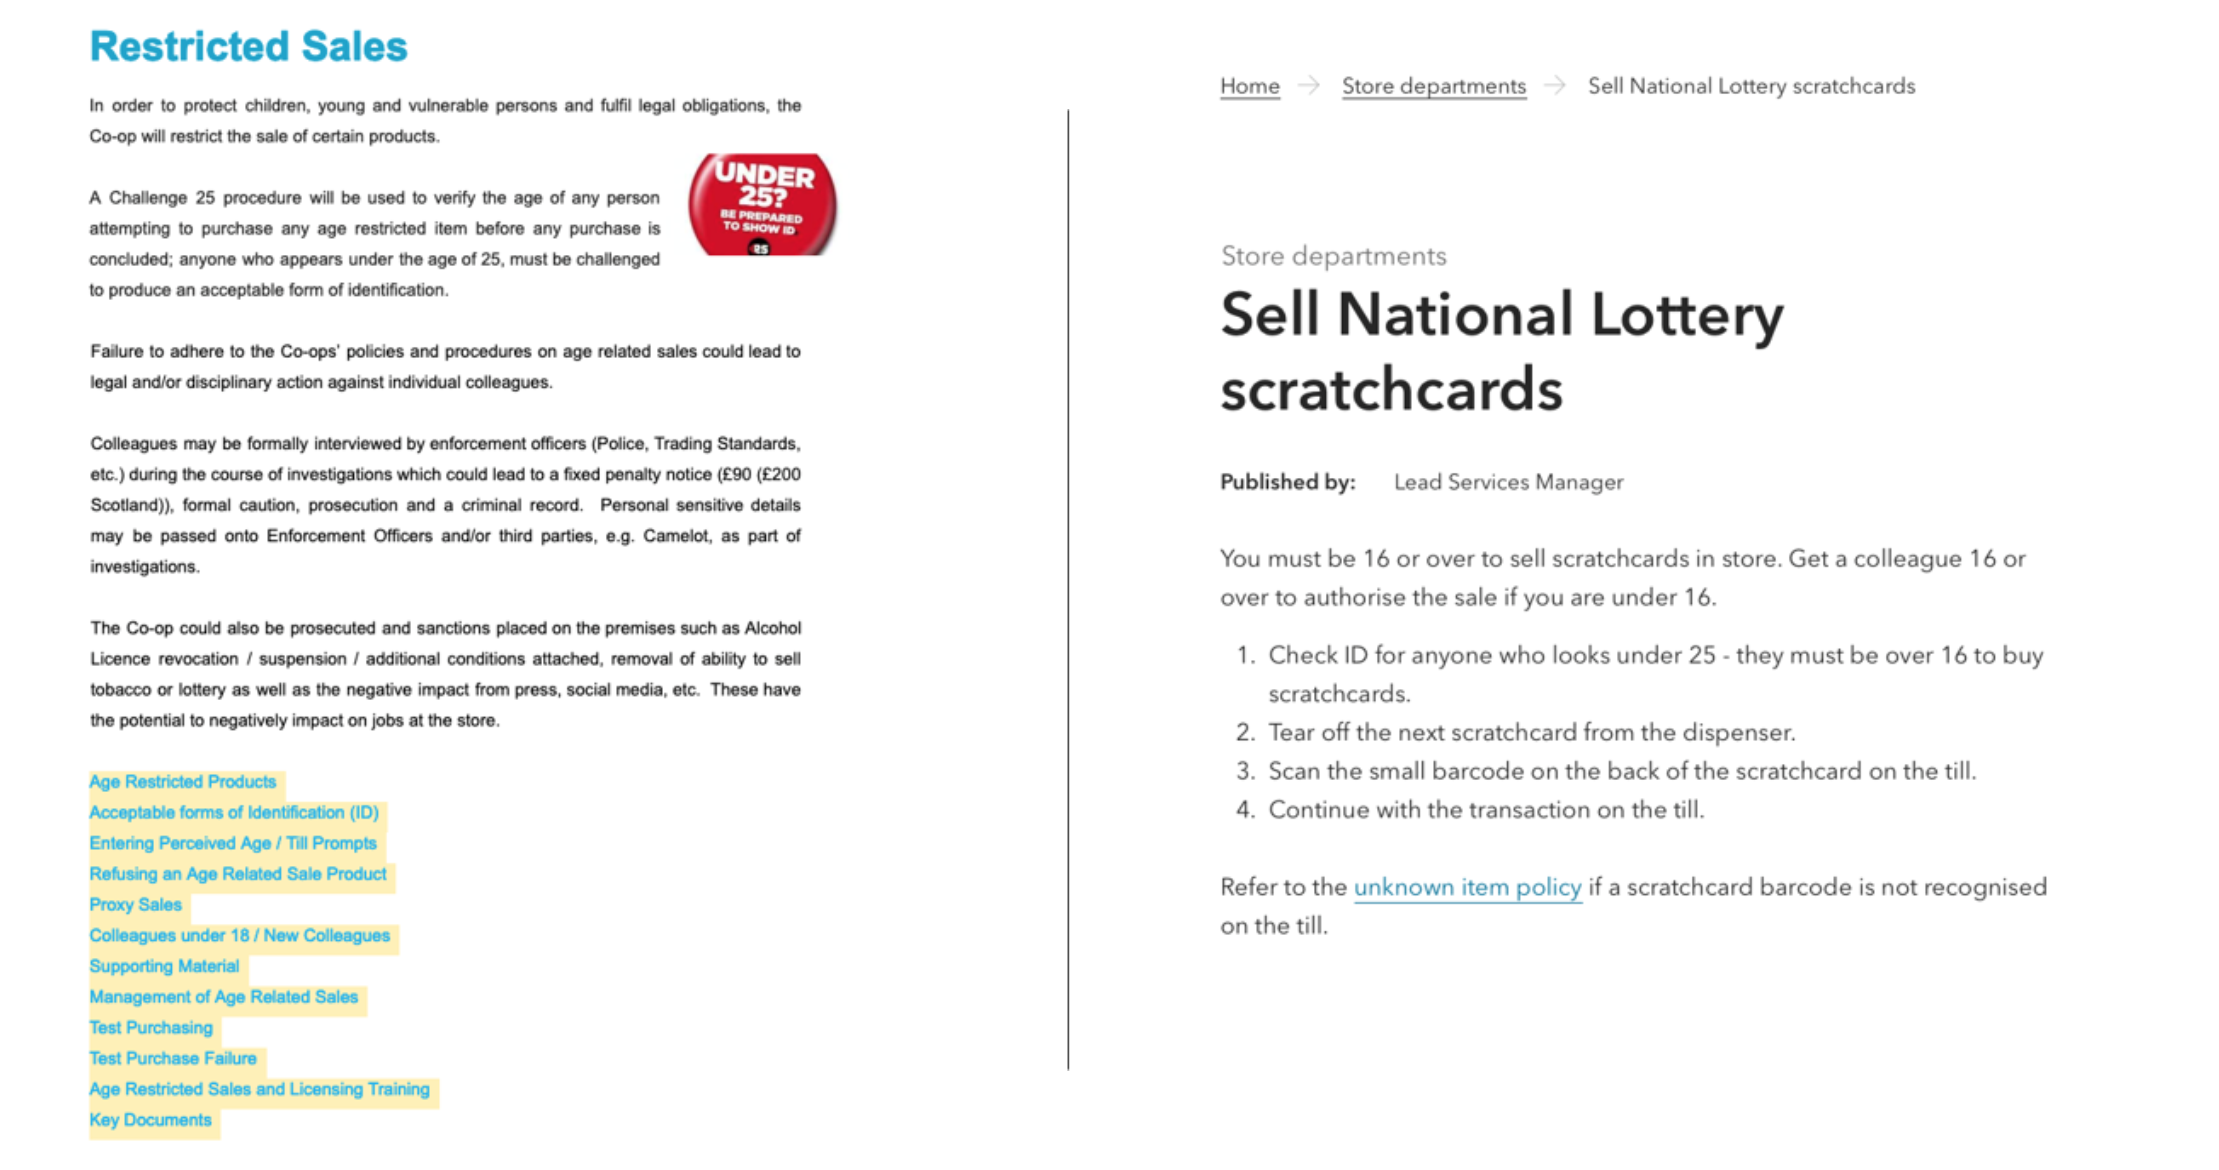 Image is split down the middle. Left hand side shows how information about 'restricted sales' was presented. It's very copy heavy. Right hand side shows how we present it now. Further description in the post copy.